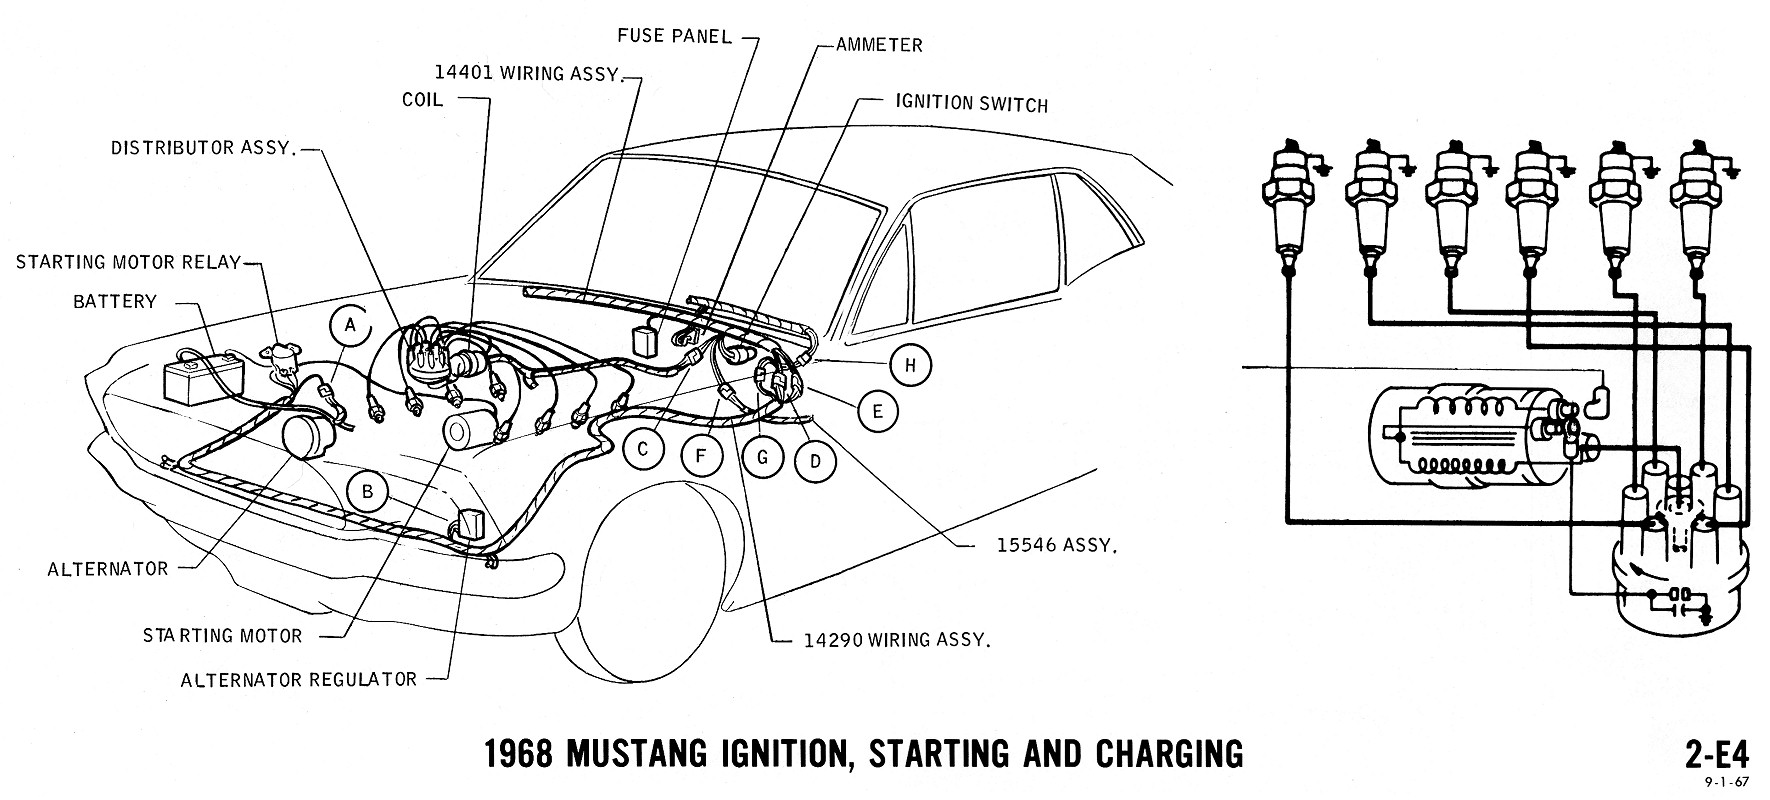 1968 mustang wiring diagram ignition starting charging 2 1968 mustang wiring diagrams and vacuum schematics average joe 1965 ford mustang wiring diagrams at suagrazia.org